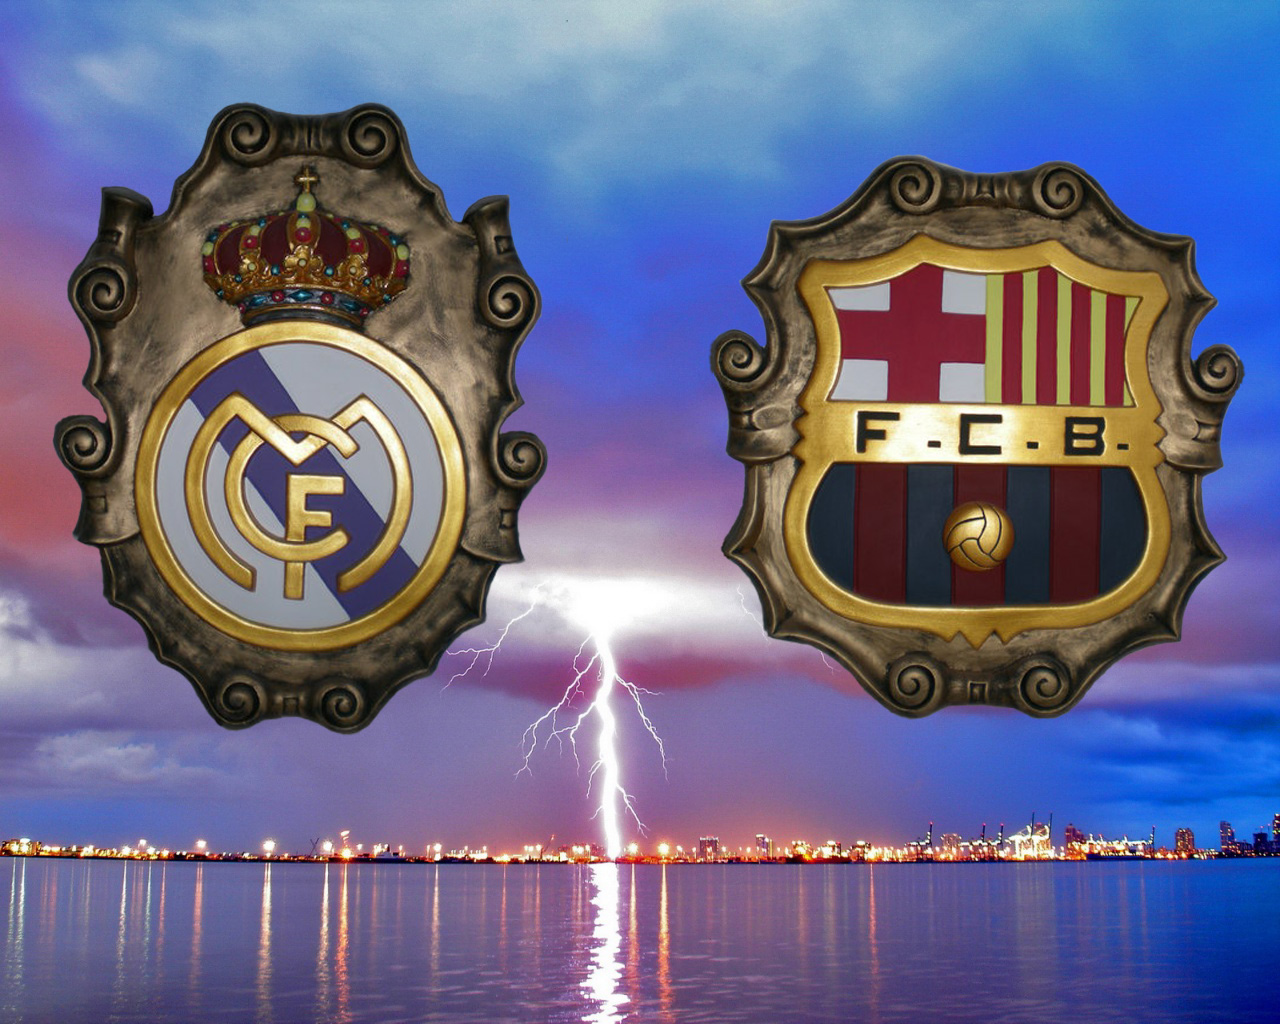 Image Result For Vivo Barcelona Vs Real Madrid En Vivo Wallpaper A